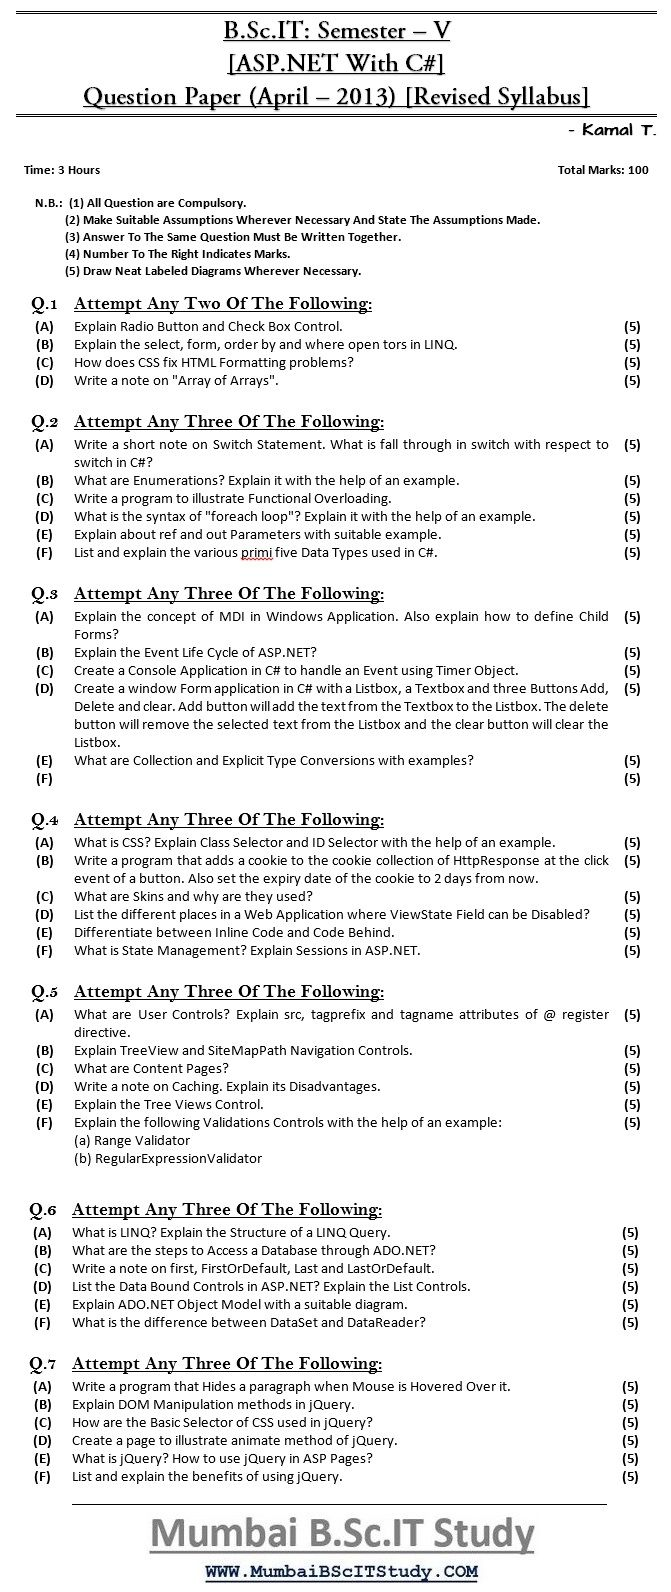 ,april-2015 question paper ,bscit question papers ,bscit semester - v question paper ,mumbai bscit study ,old question paper ,question papers ,revised syllabus ,asp.net with c# ,mumbai university questions paper ,may - 2017